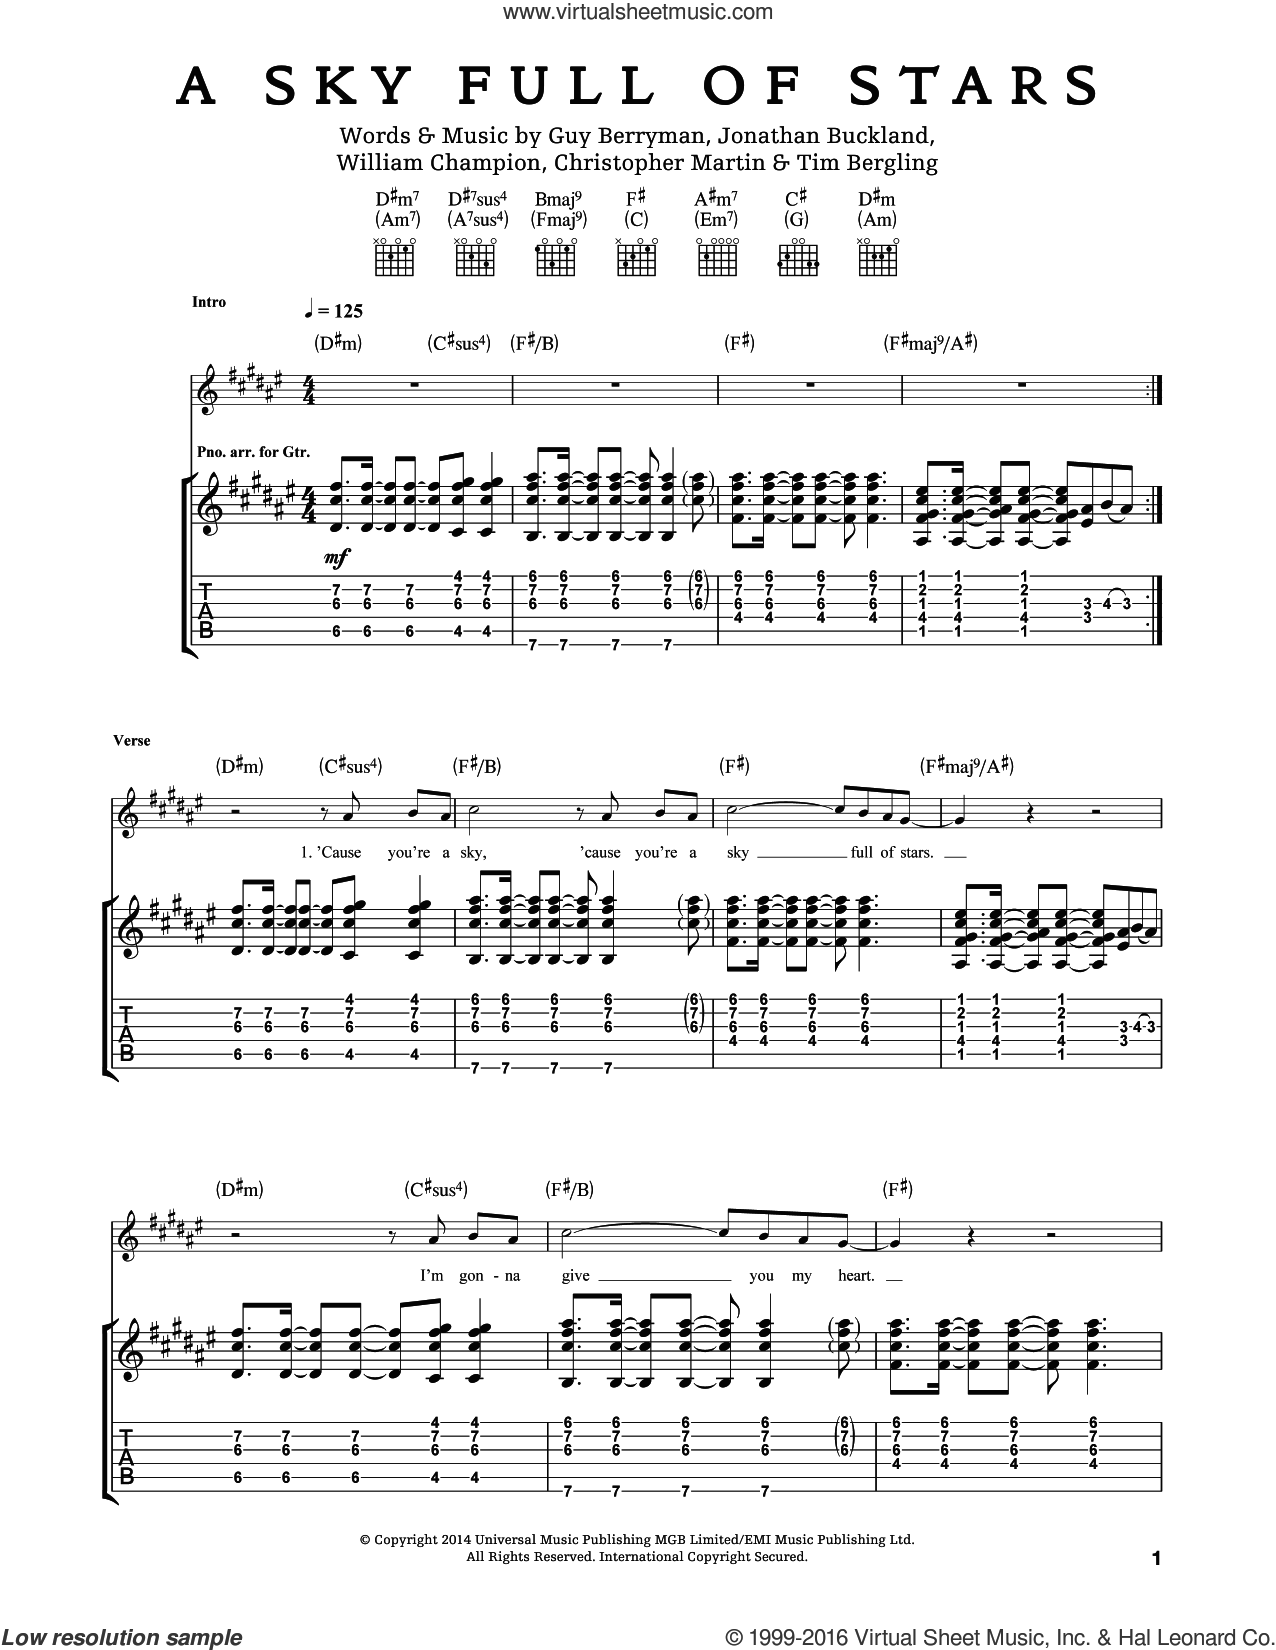 A Sky Full Of Stars sheet music for guitar (tablature) by Will Champion, Coldplay, Chris Martin, Guy Berryman, Jon Buckland and Tim Bergling. Score Image Preview.